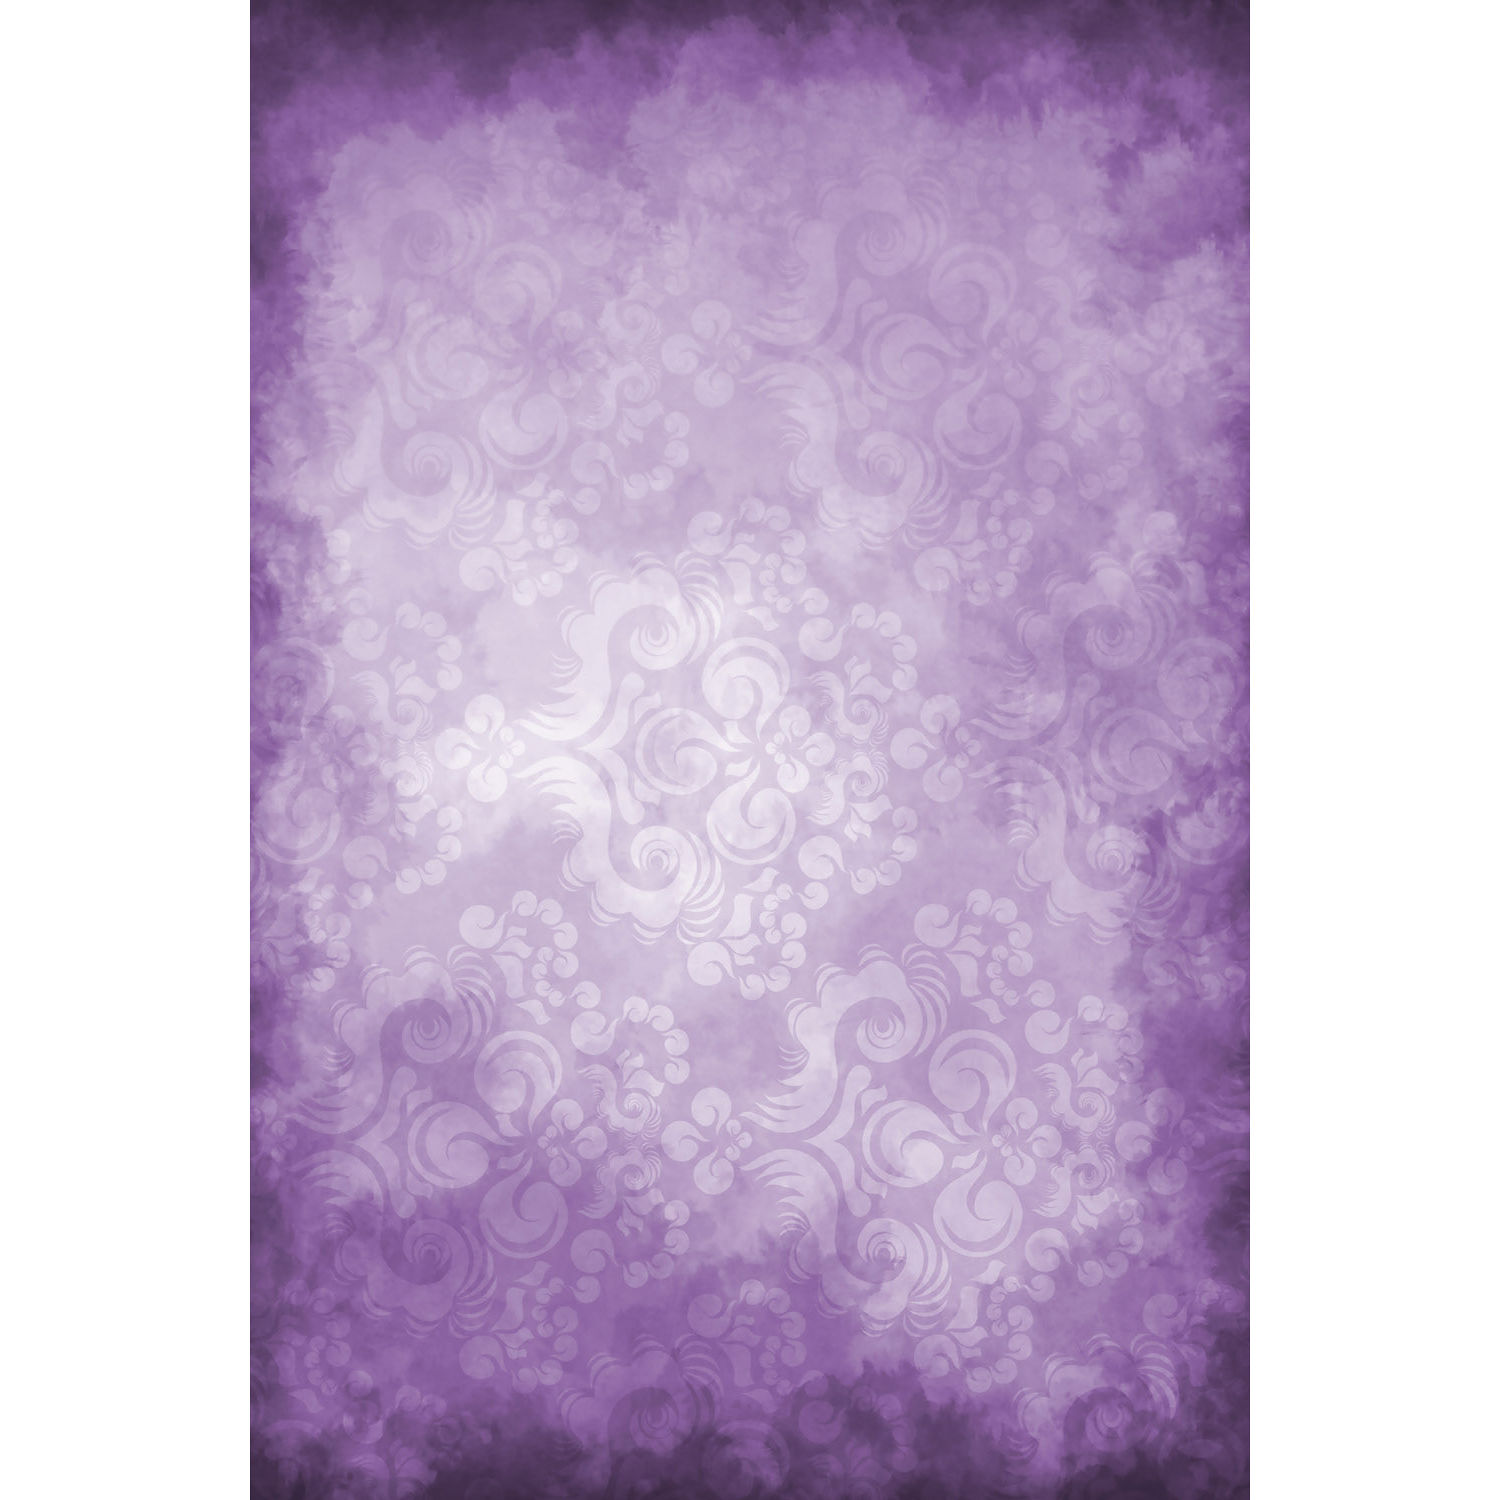 Savage Hazy Purple Floral Printed Vinyl Backdrop 5x7 P Vl738 Wire Wrapped Circuit Board With Glass More